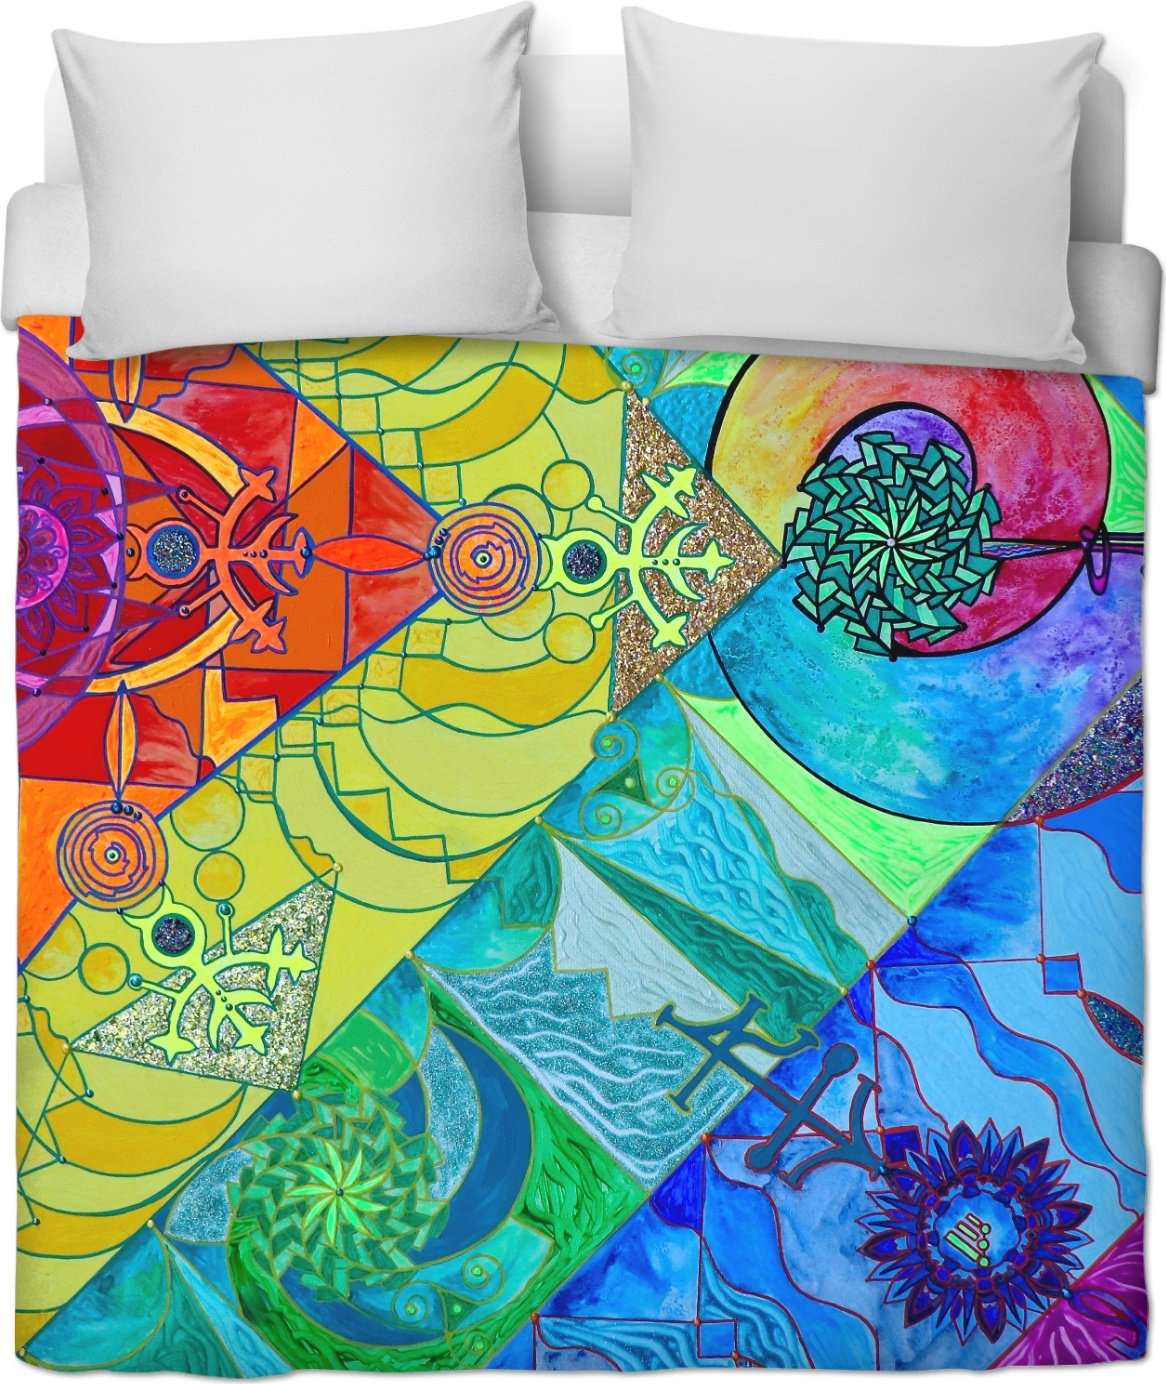 Expansion Pleiadian Lightwork Model - Duvet Cover